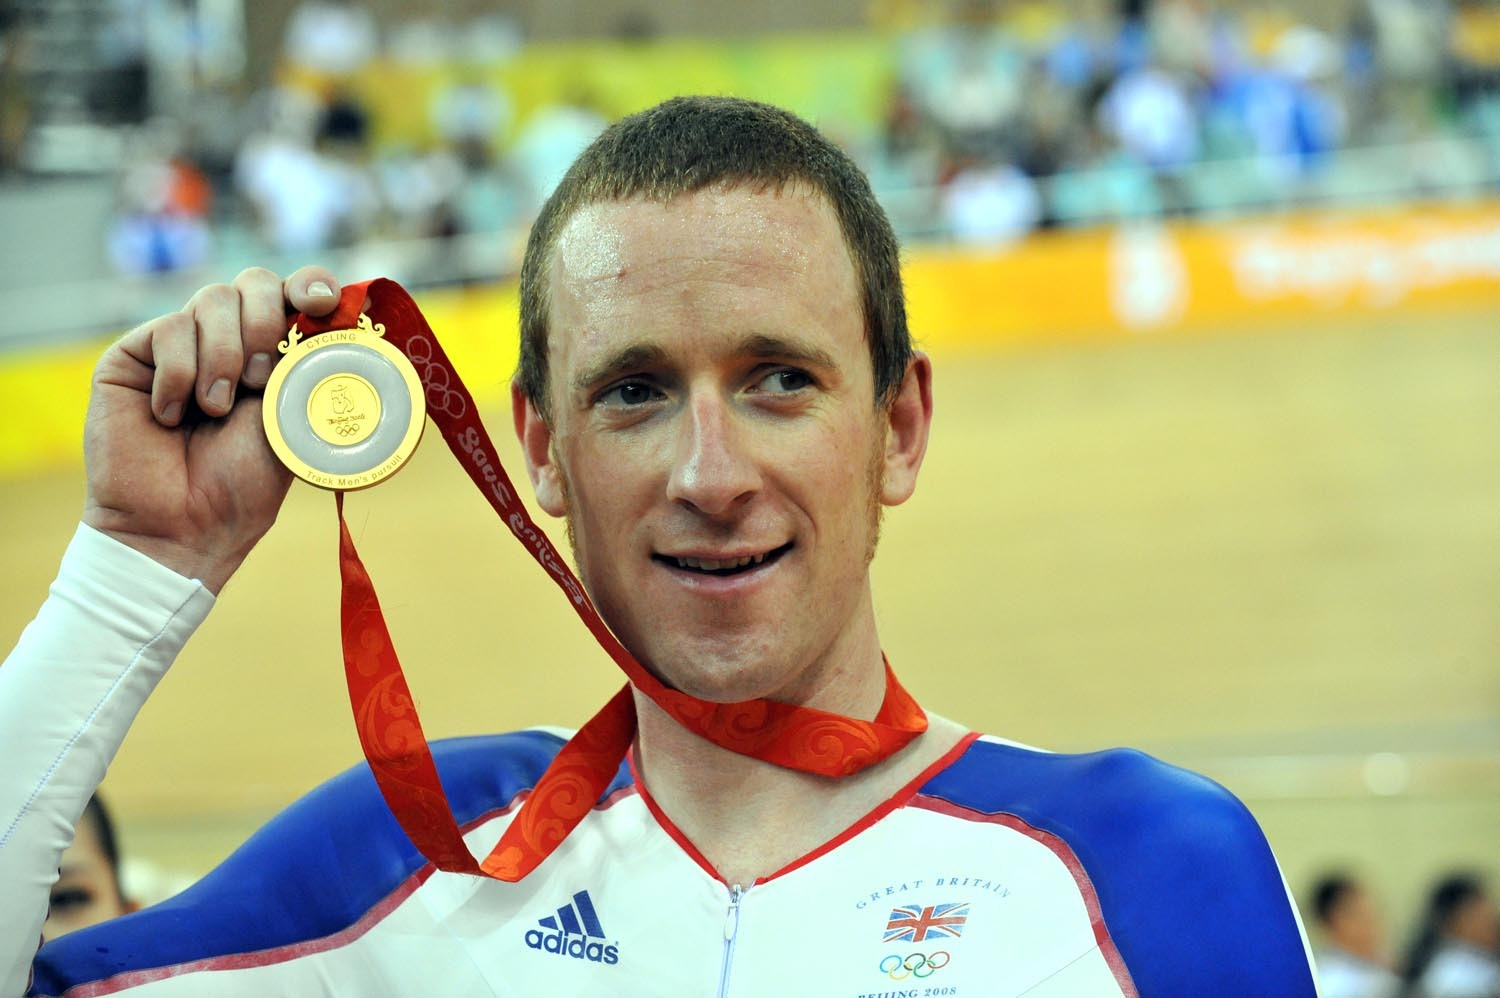 Bradley Wiggins Olympuc pursuit gold